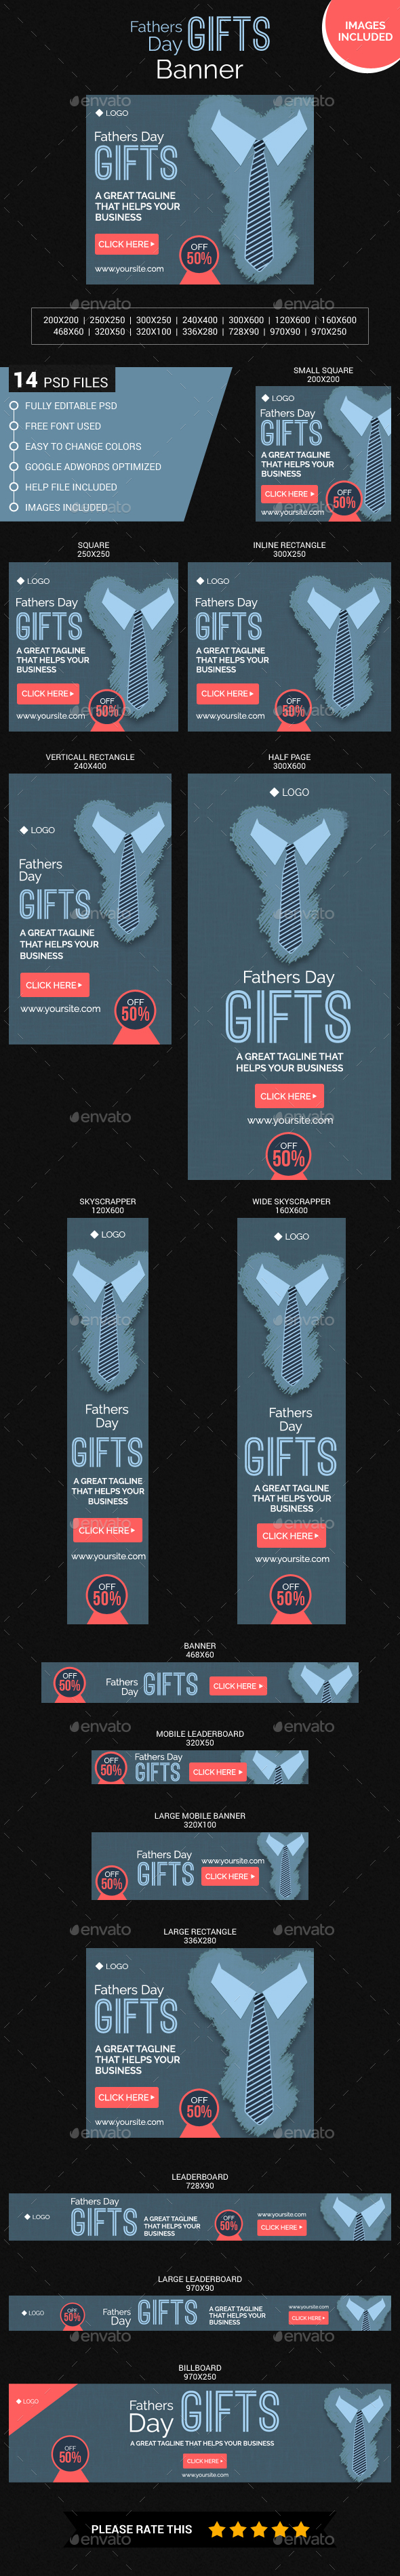 Fathers day Gifts - Banners & Ads Web Elements